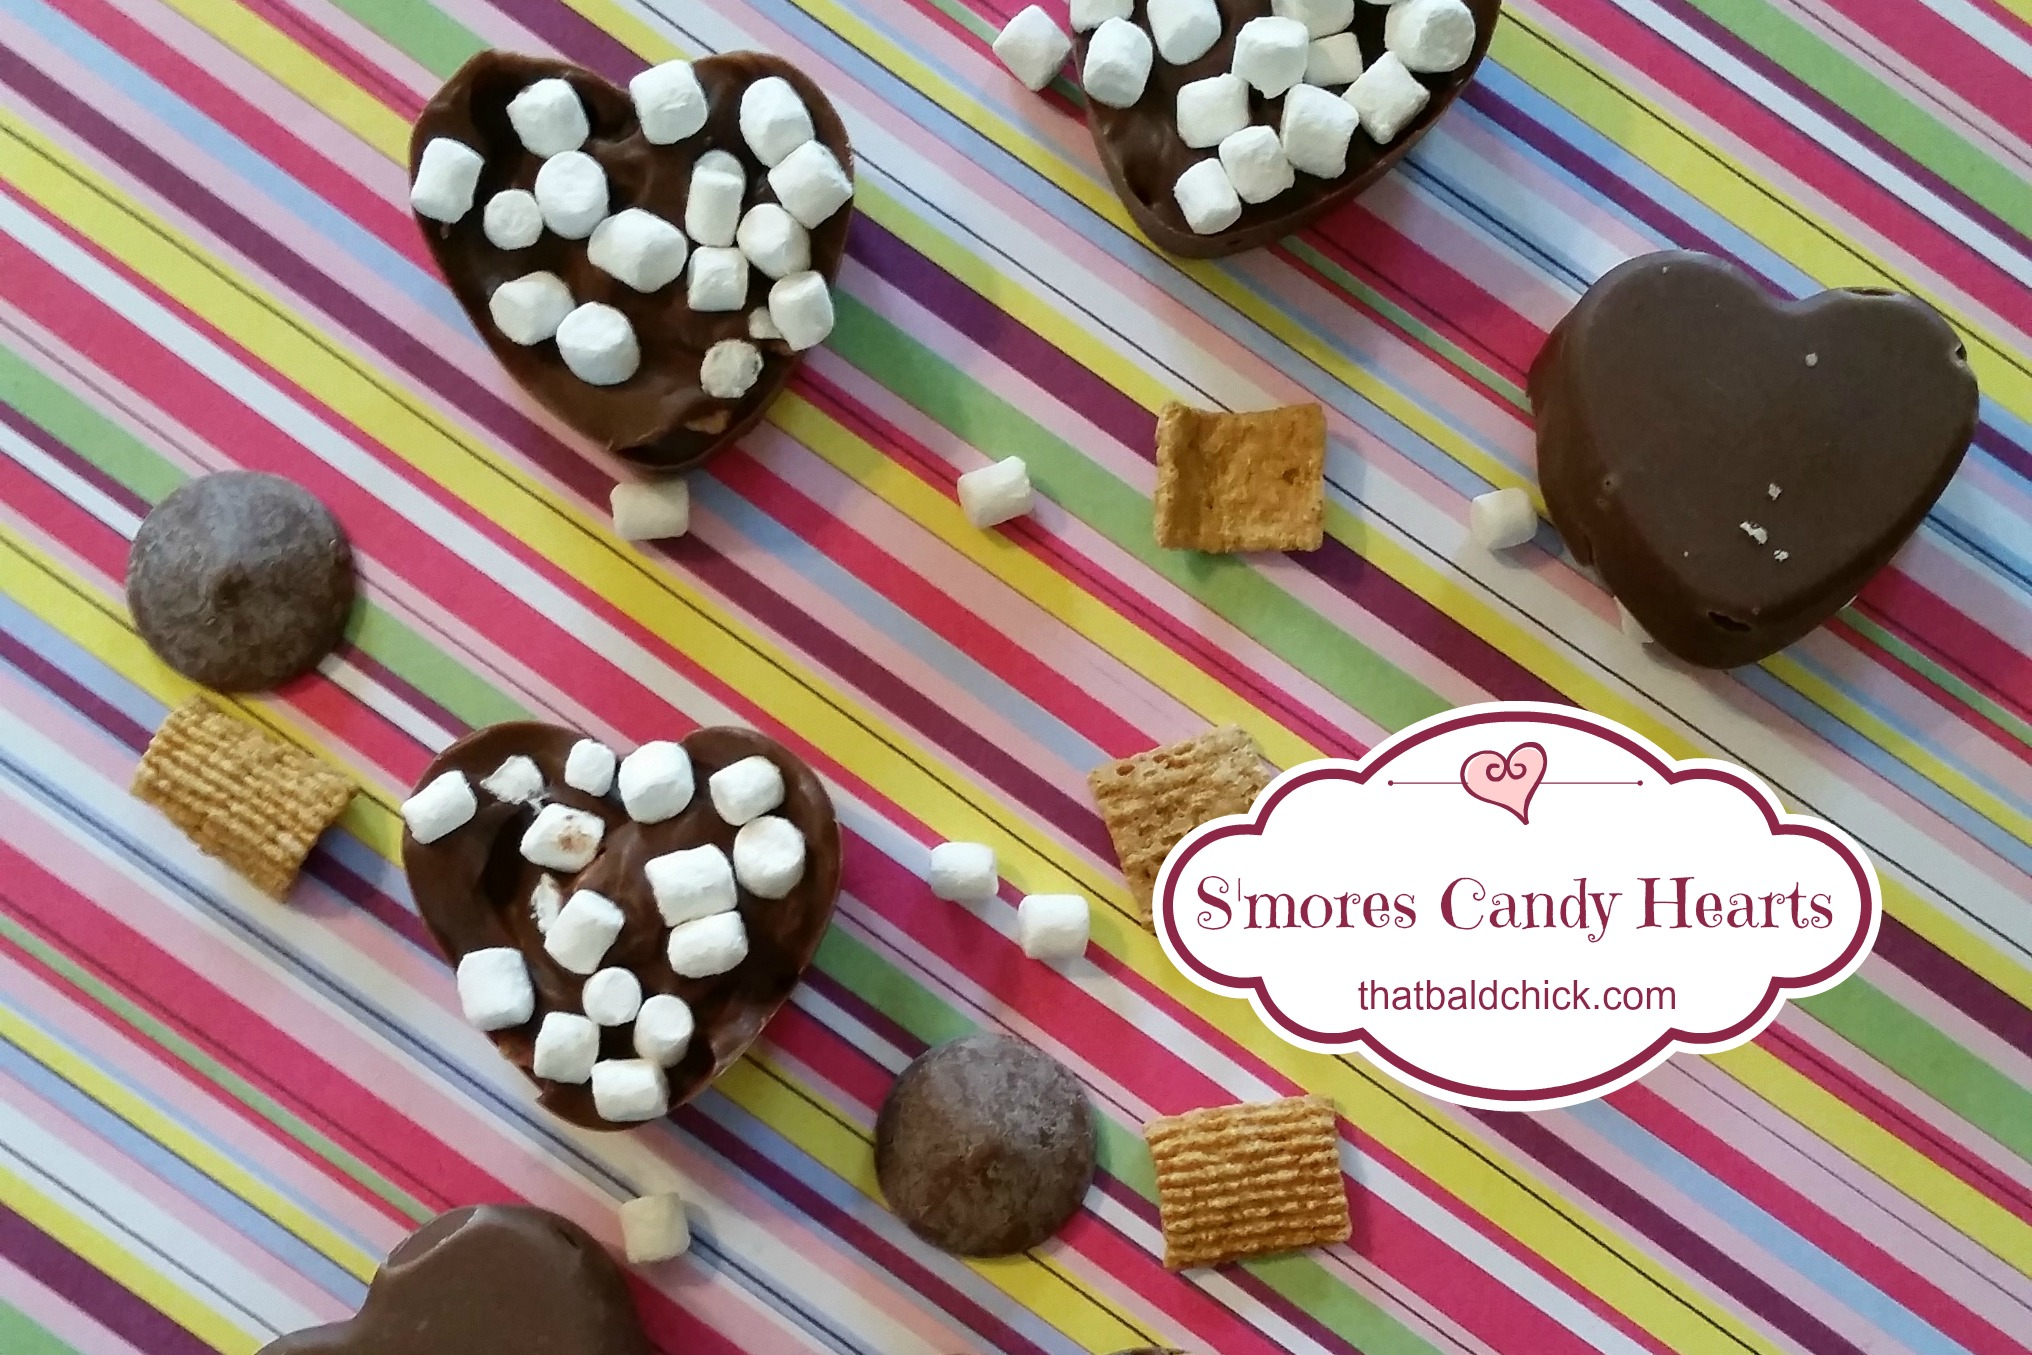 S'mores Candy Hearts @thatbaldchick